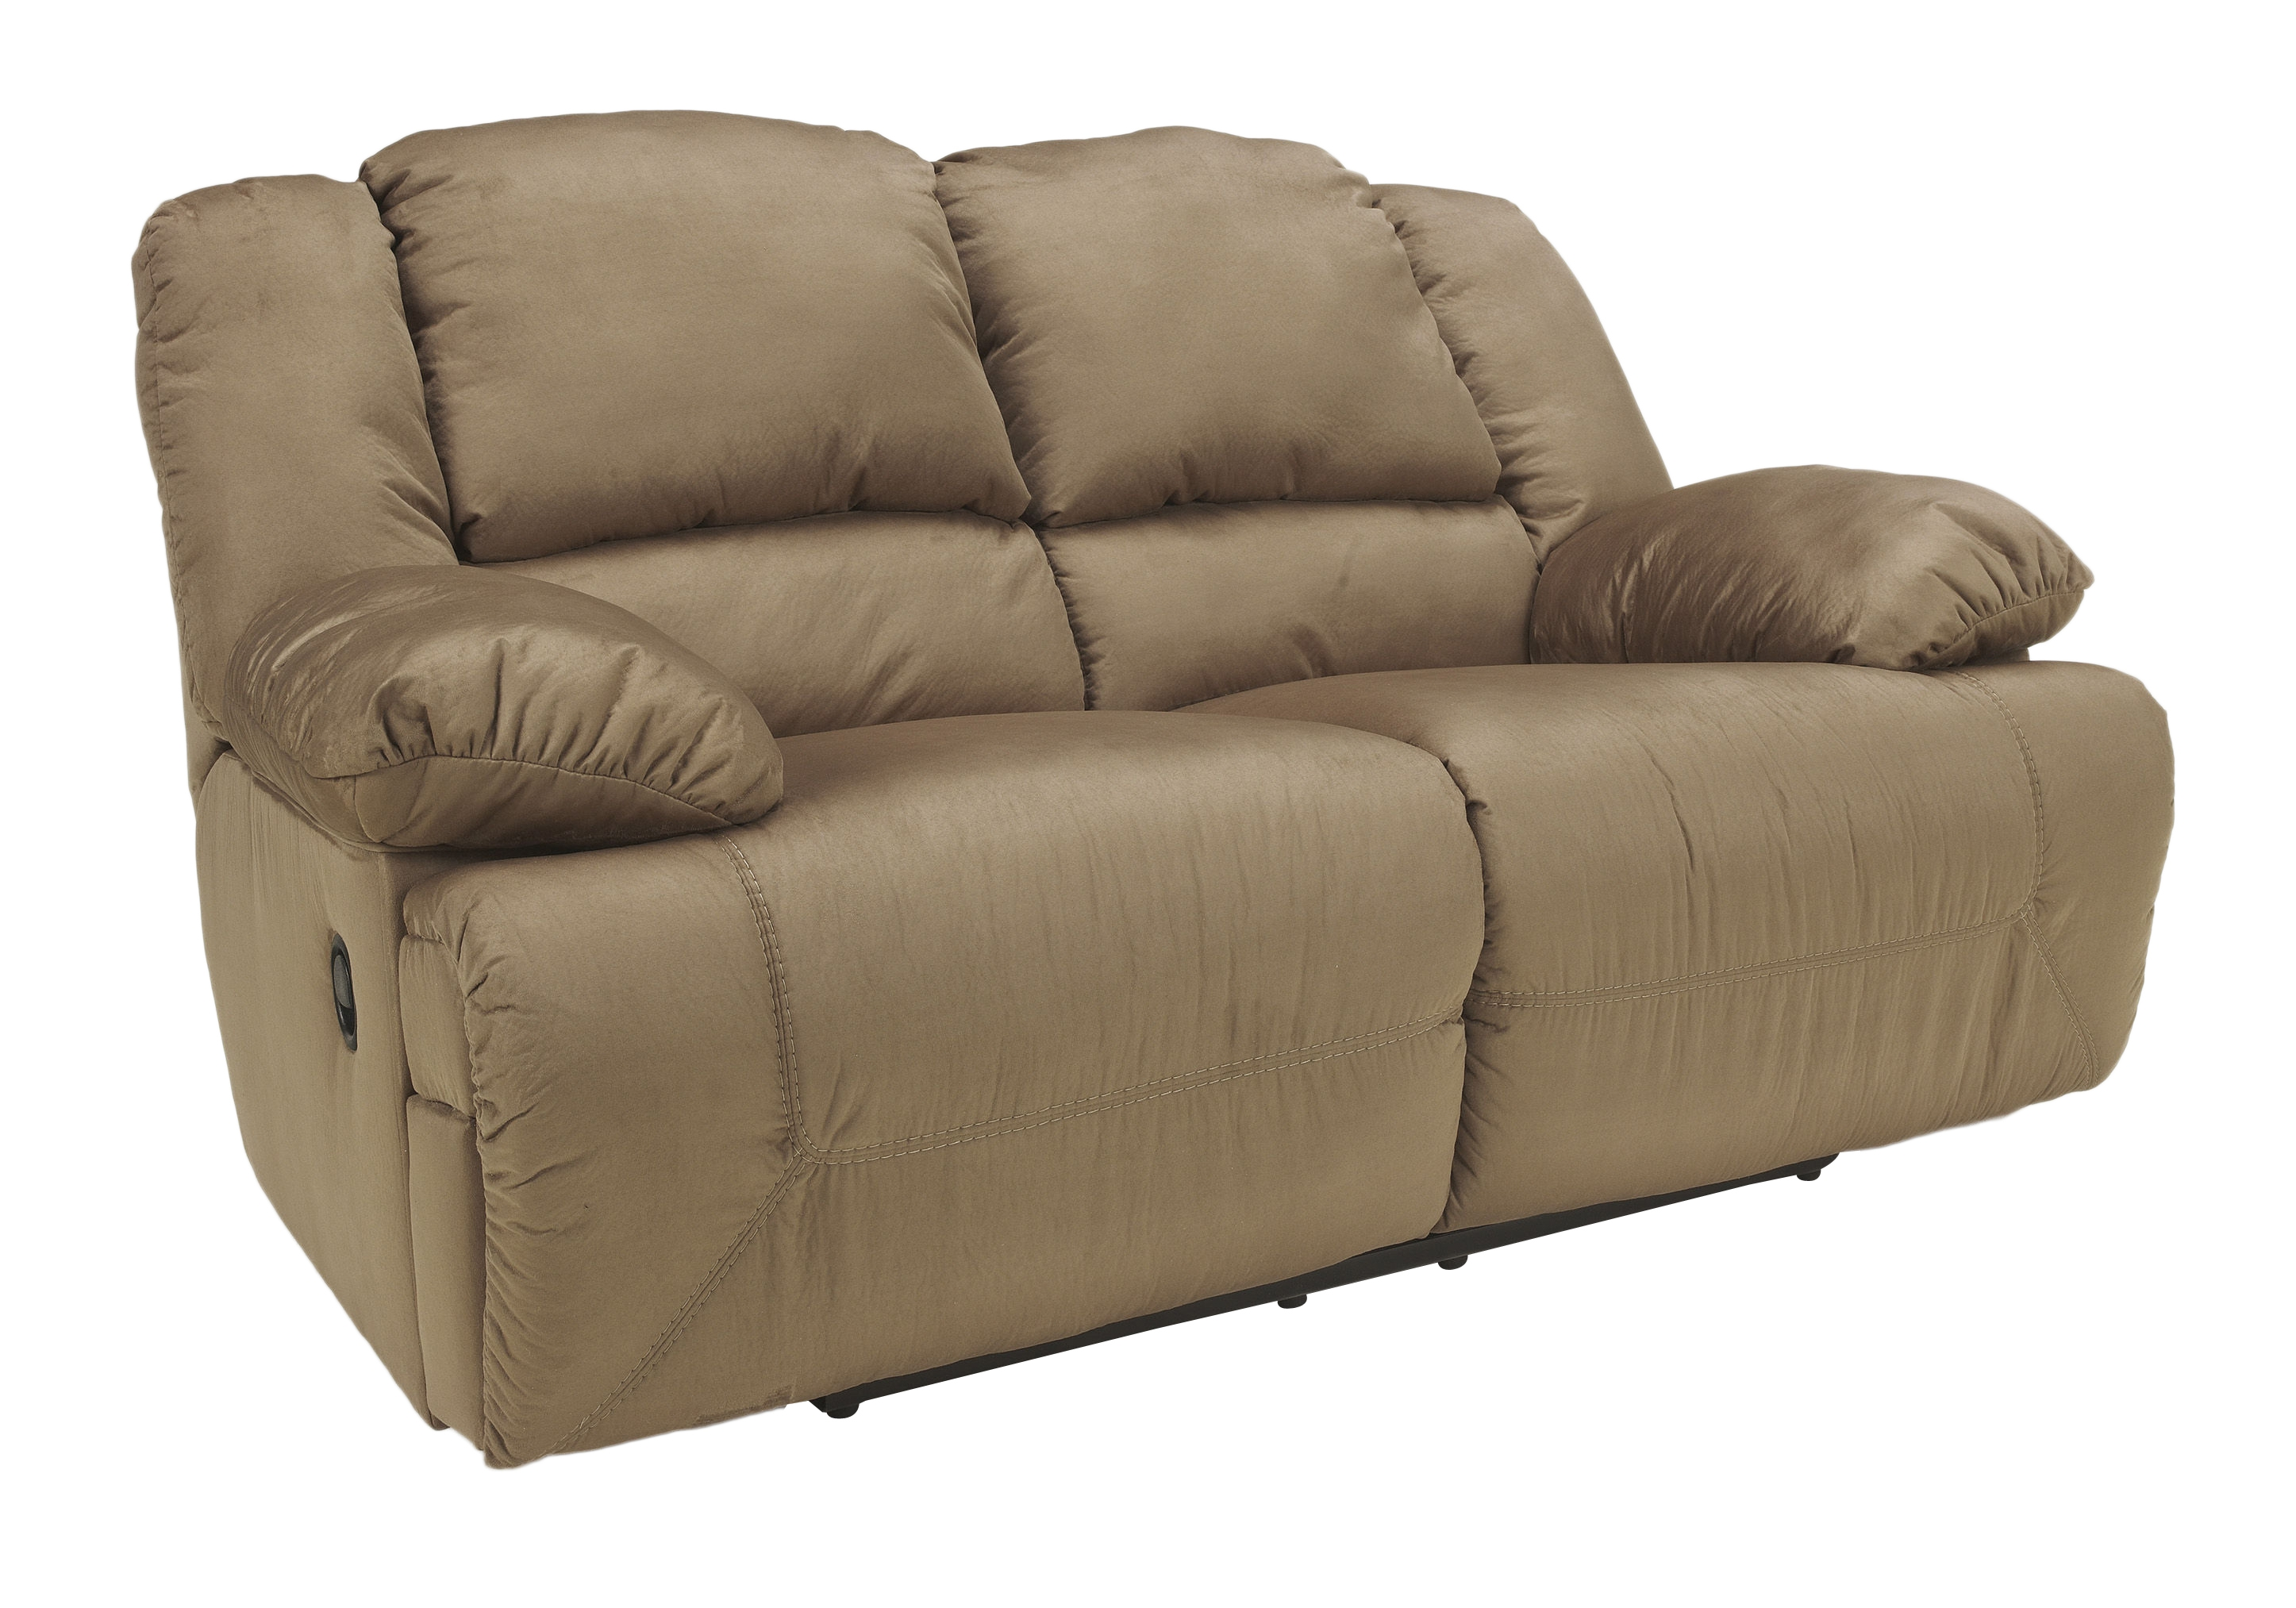 Ashley Furniture Hogan Mocha Reclining Loveseat The Classy Home